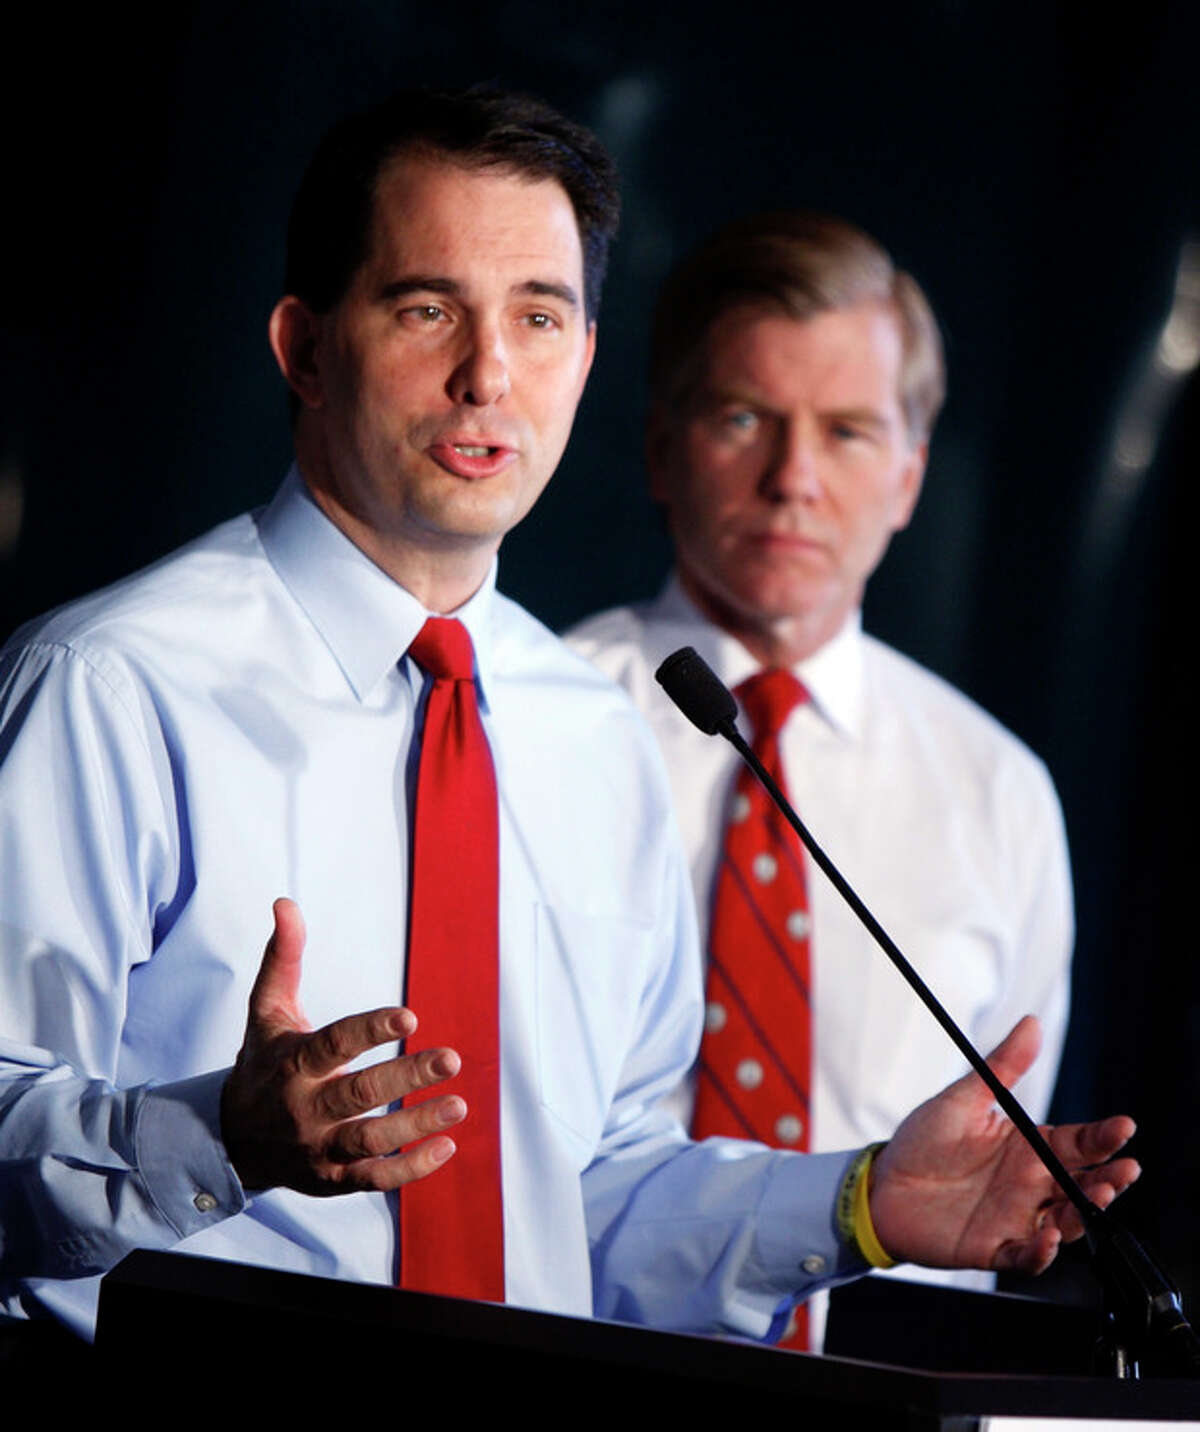 Wisconsin Gov. Scott Walker, left, and Virginia Gov. Bob McDonnell, right, during a news conference at Copland Trucking in Williamsburg, Va., Friday, July 13, 2012. before the start of the National Governors Association meeting. McDonnell and Walker are two of the governors attending the National Governors Association meeting in Williamsburg. (AP Photo/Richmond Times-Dispatch, Bob Brown)